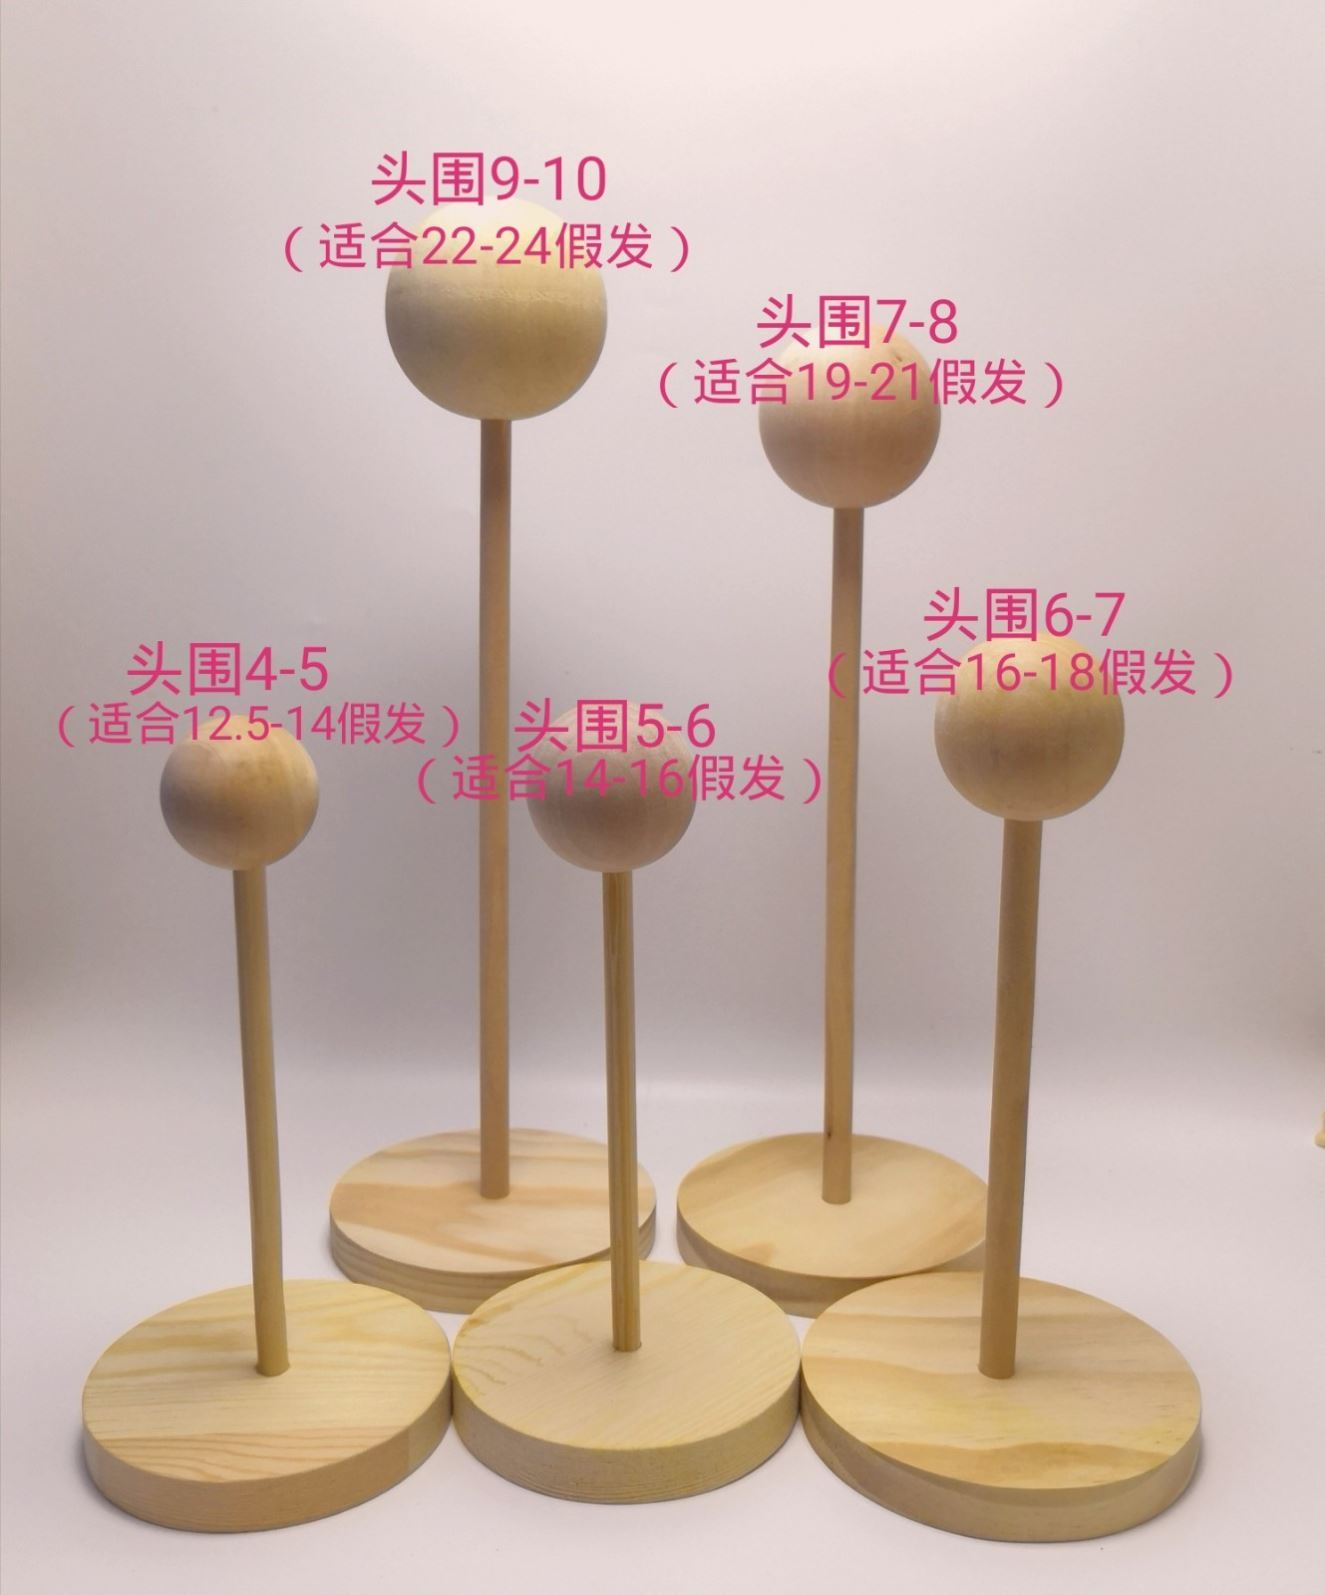 Tool model head accessories finishing portable doll wooden wig solid wood shelf placing frame BJD bracket